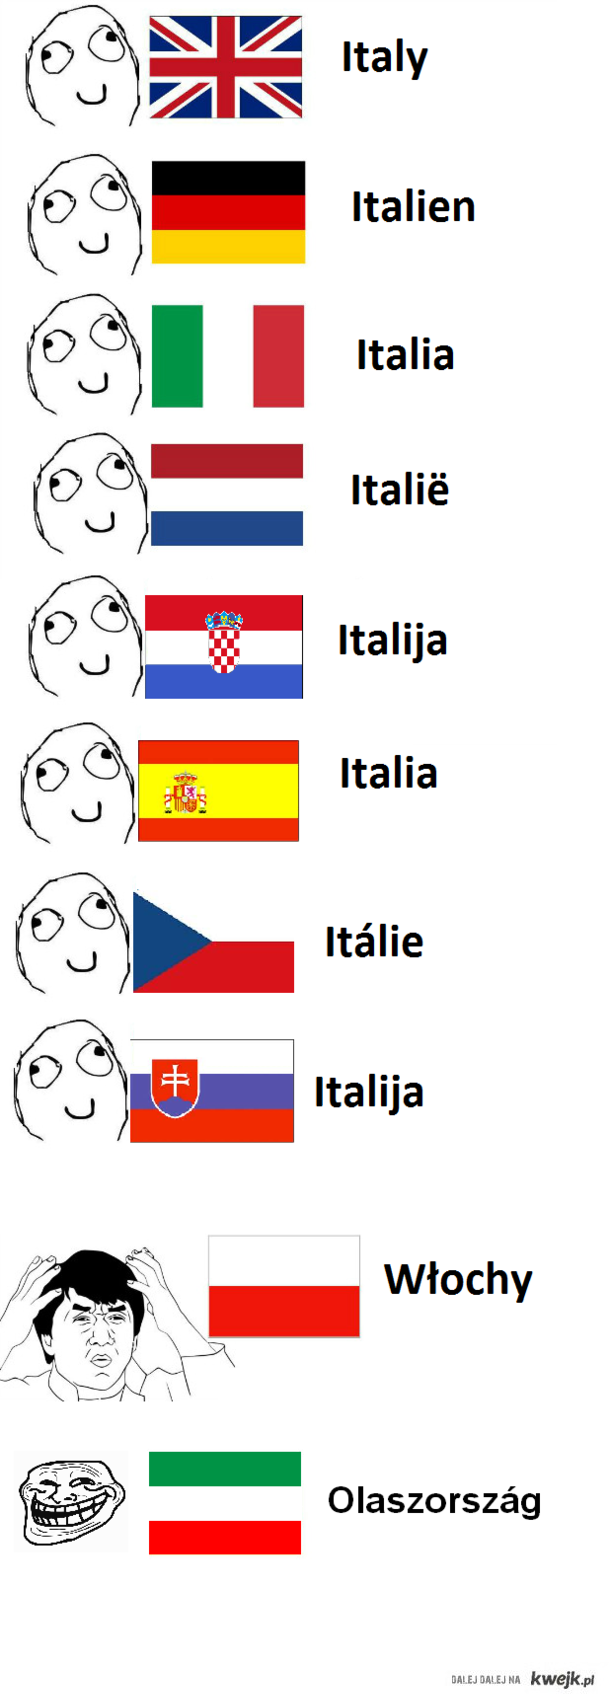 Italy in Hungarian